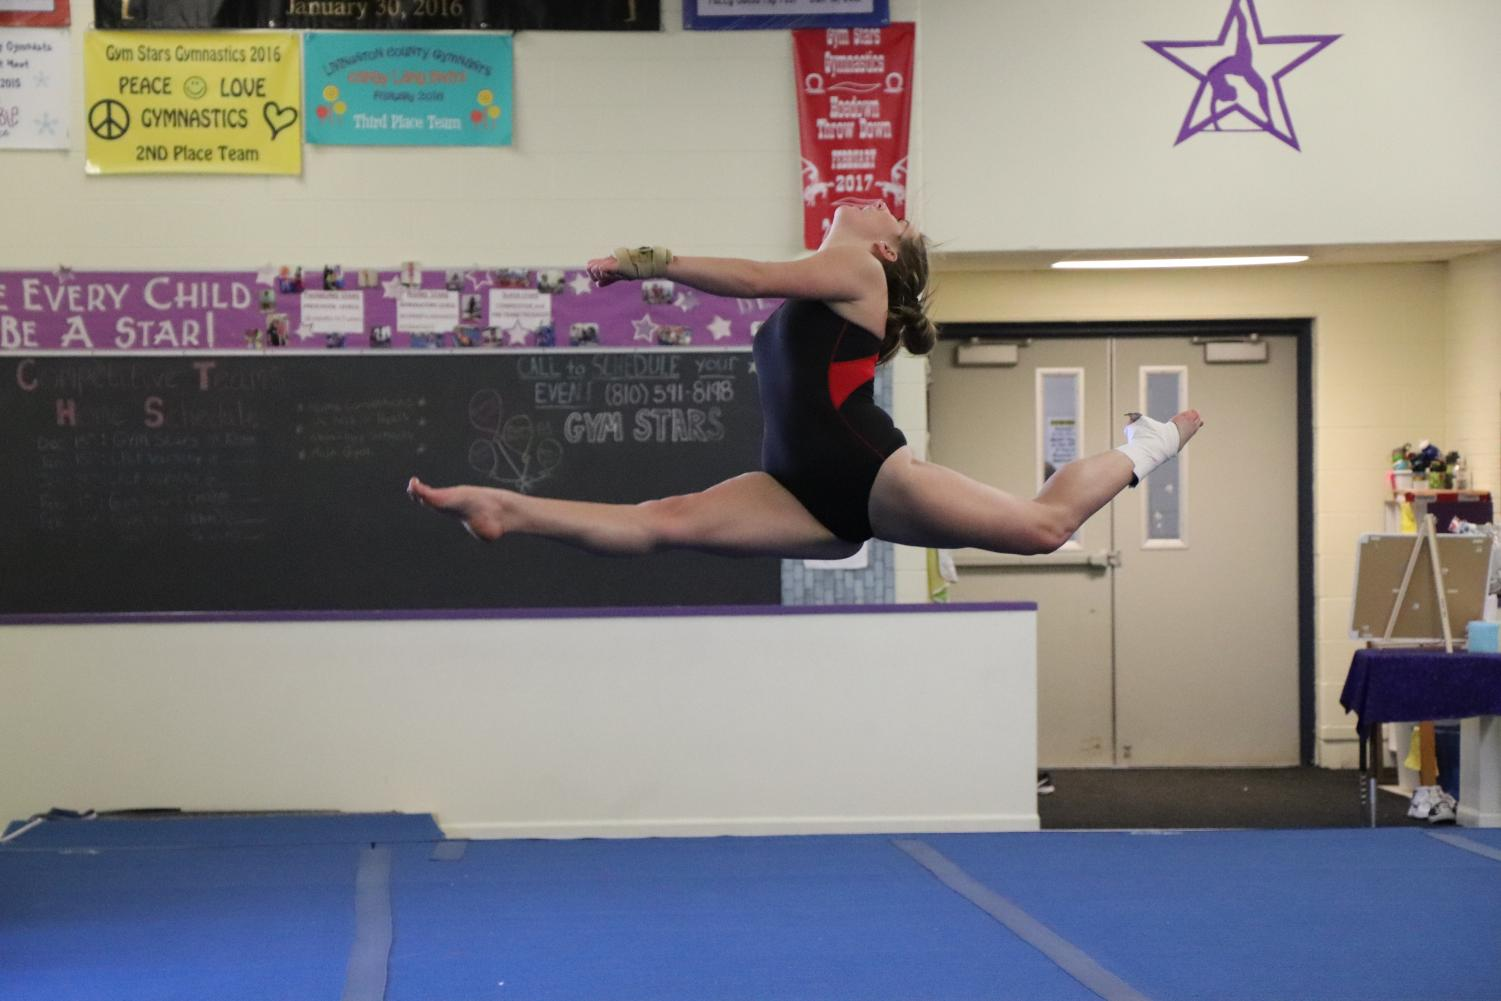 With regionals fastly approaching, the Fenton/Linden gymnastics team has been practicing, making sure every detail is perfect. Sophomore Emma Jump leaps during her floor routine while her teammates cheers her on from the side. Regionals is being held on Saturday March 2 in Grand Ledge.